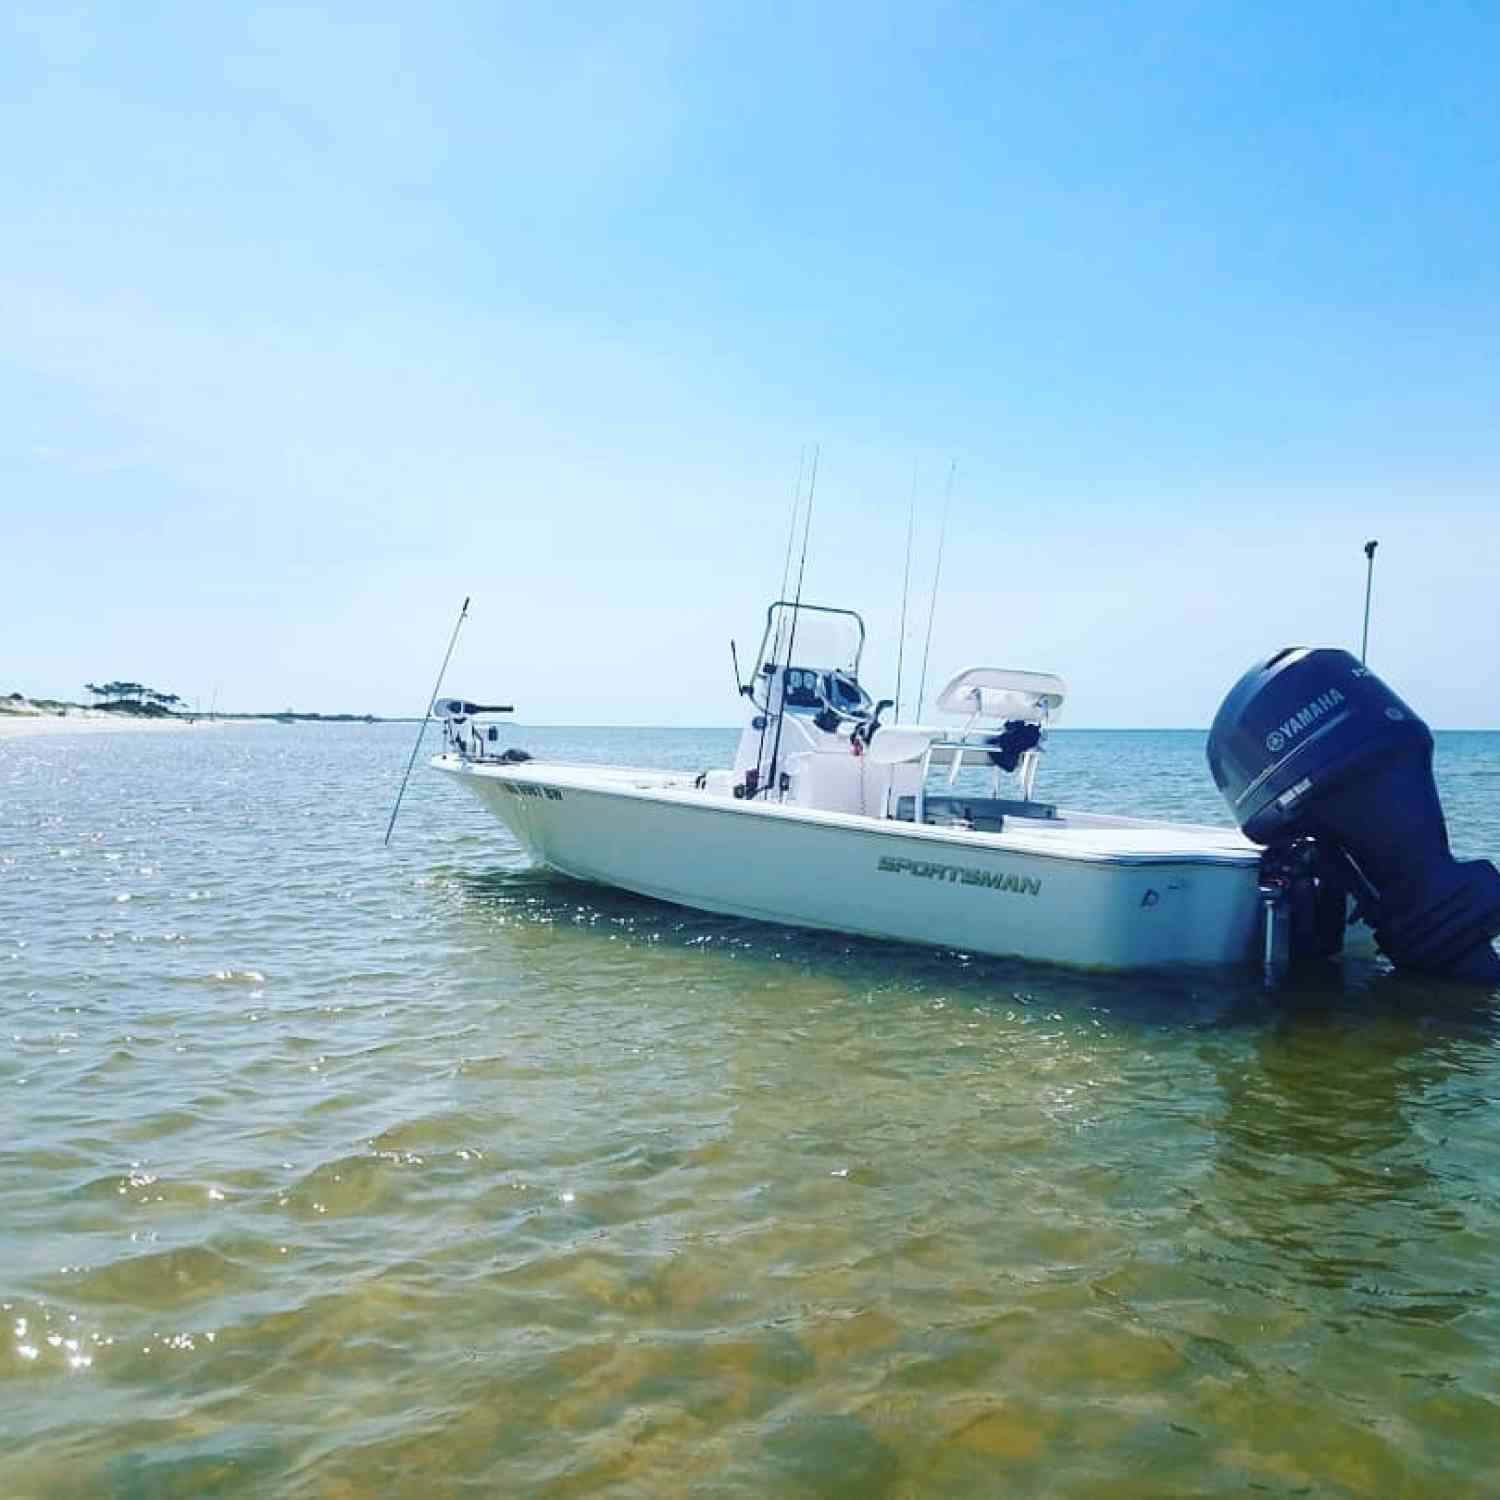 Title: Island Fishing - On board their Sportsman Tournament 214 SBX Bay Boat - Location: Horn Island, Ms. Participating in the Photo Contest #SportsmanJuly2018